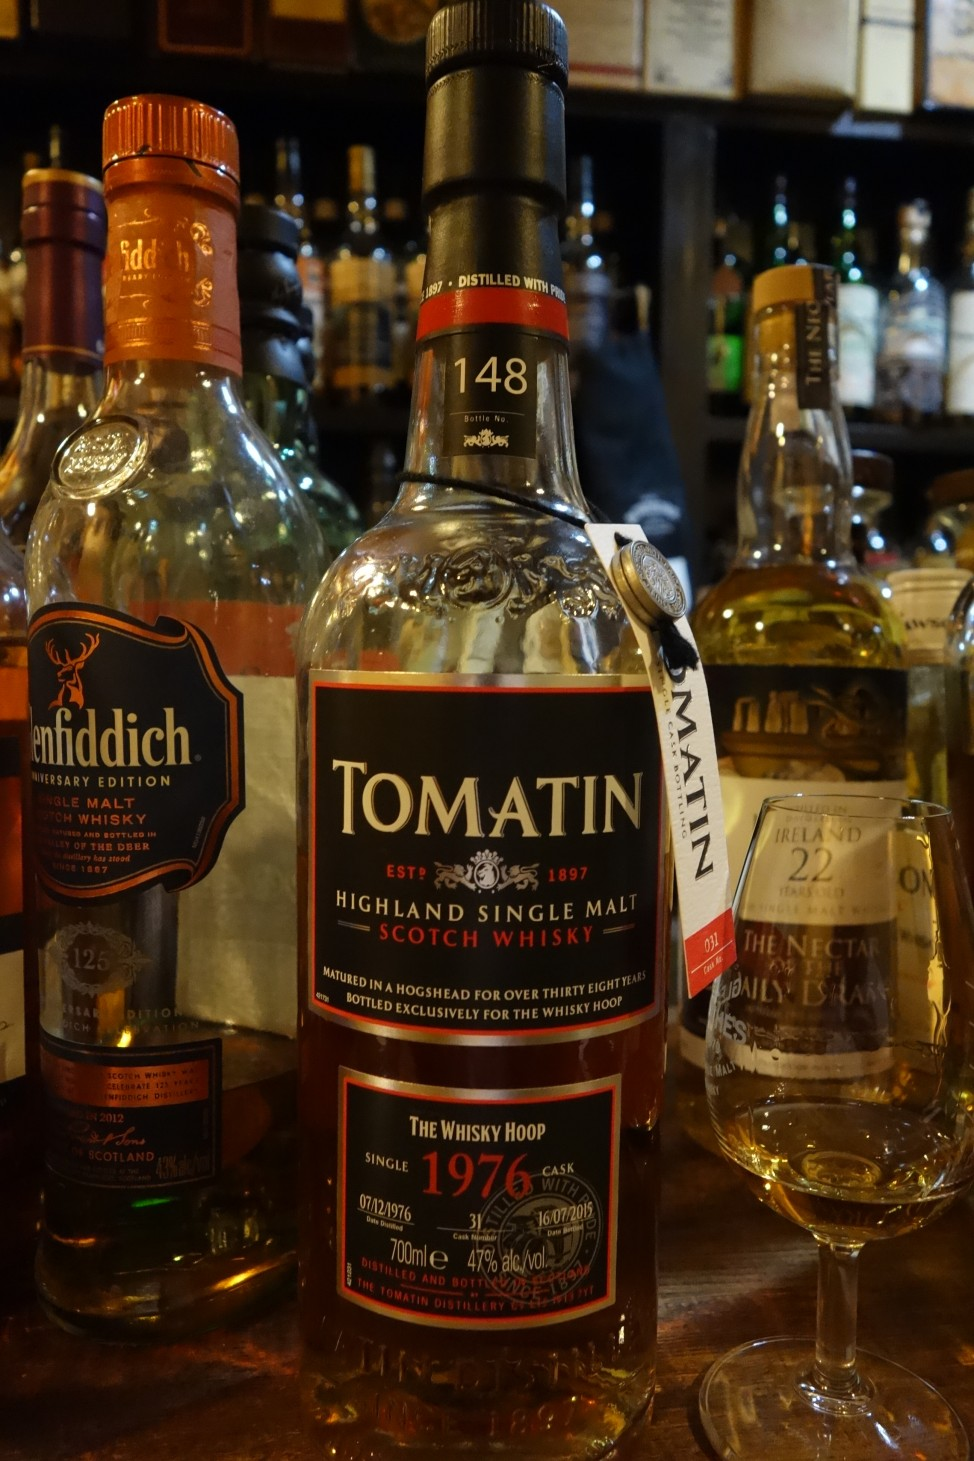 TOMATIN 1976-2015 38yo OB for THE WHISKY HOOP #31